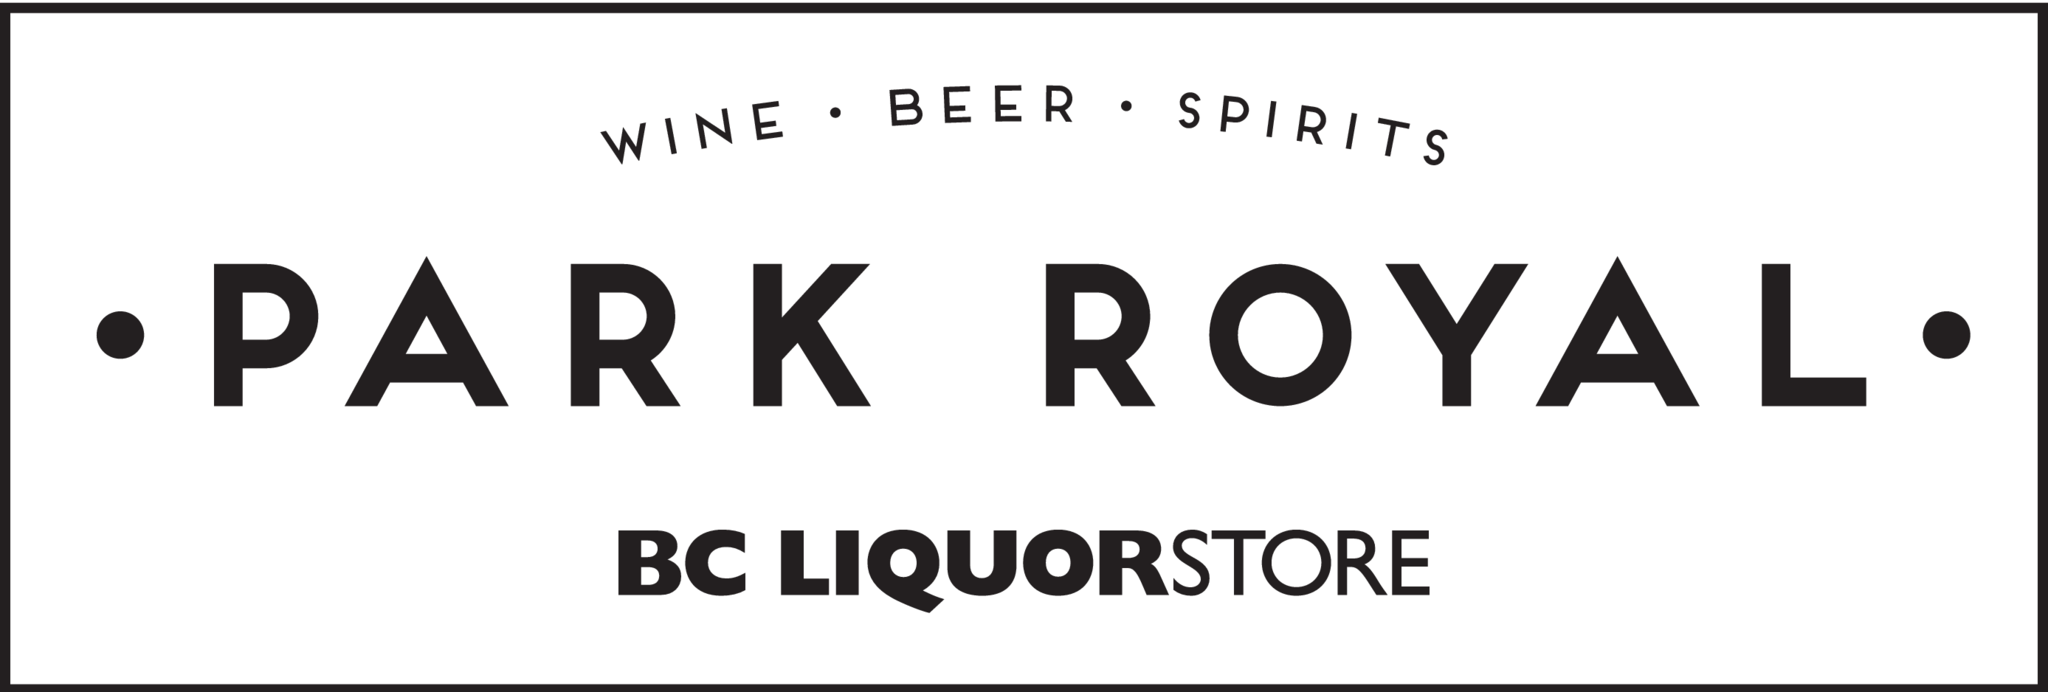 Events Happening at Park Royal BC Liquor Store in March